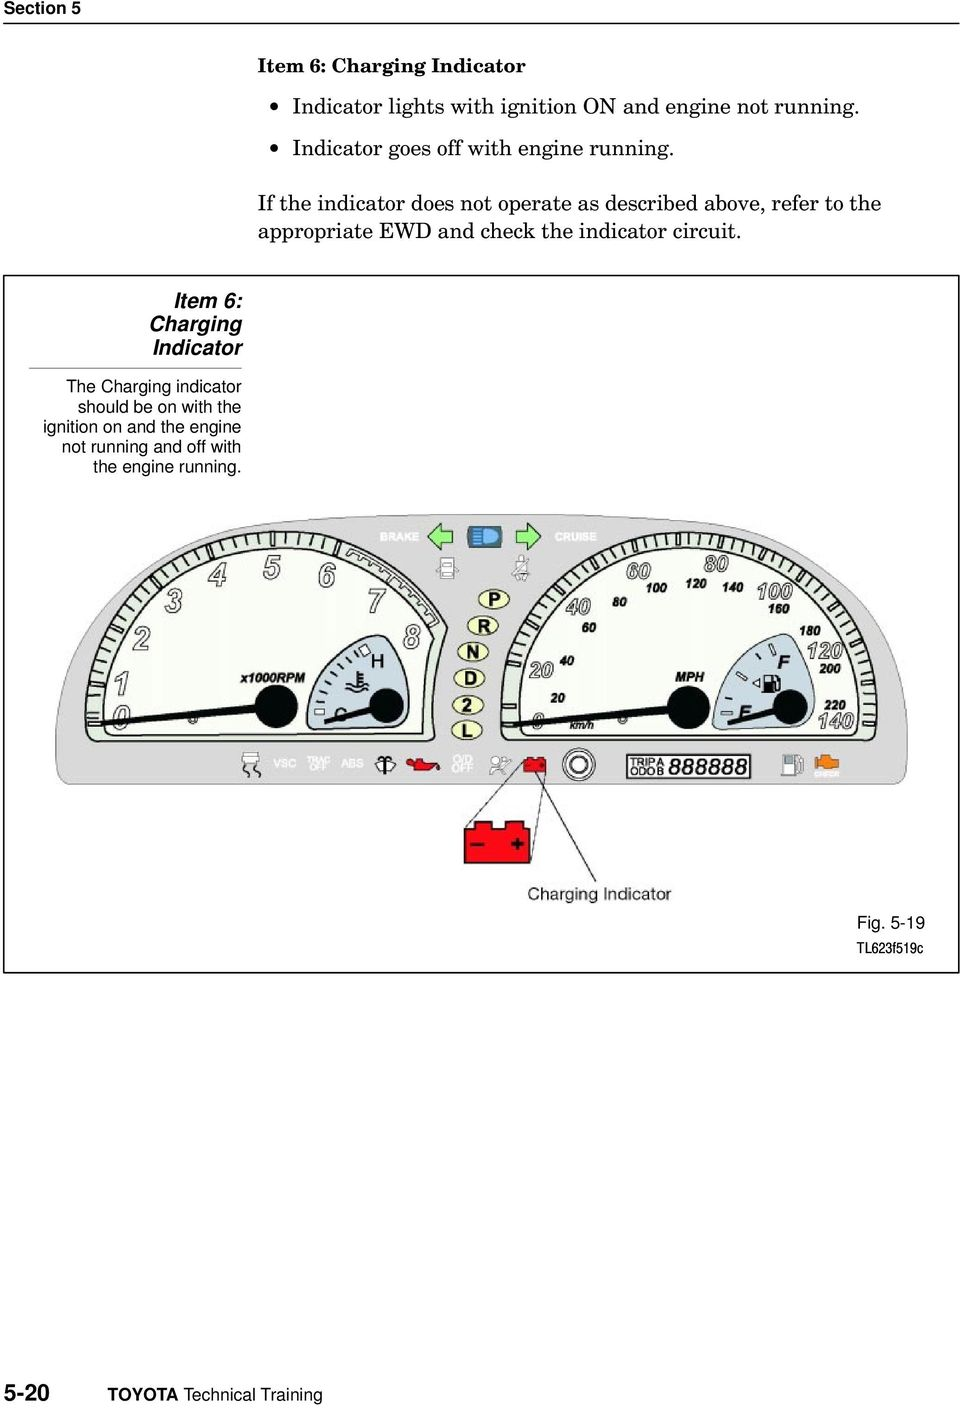 If the indicator does not operate as described above, refer to the appropriate EWD and check the indicator